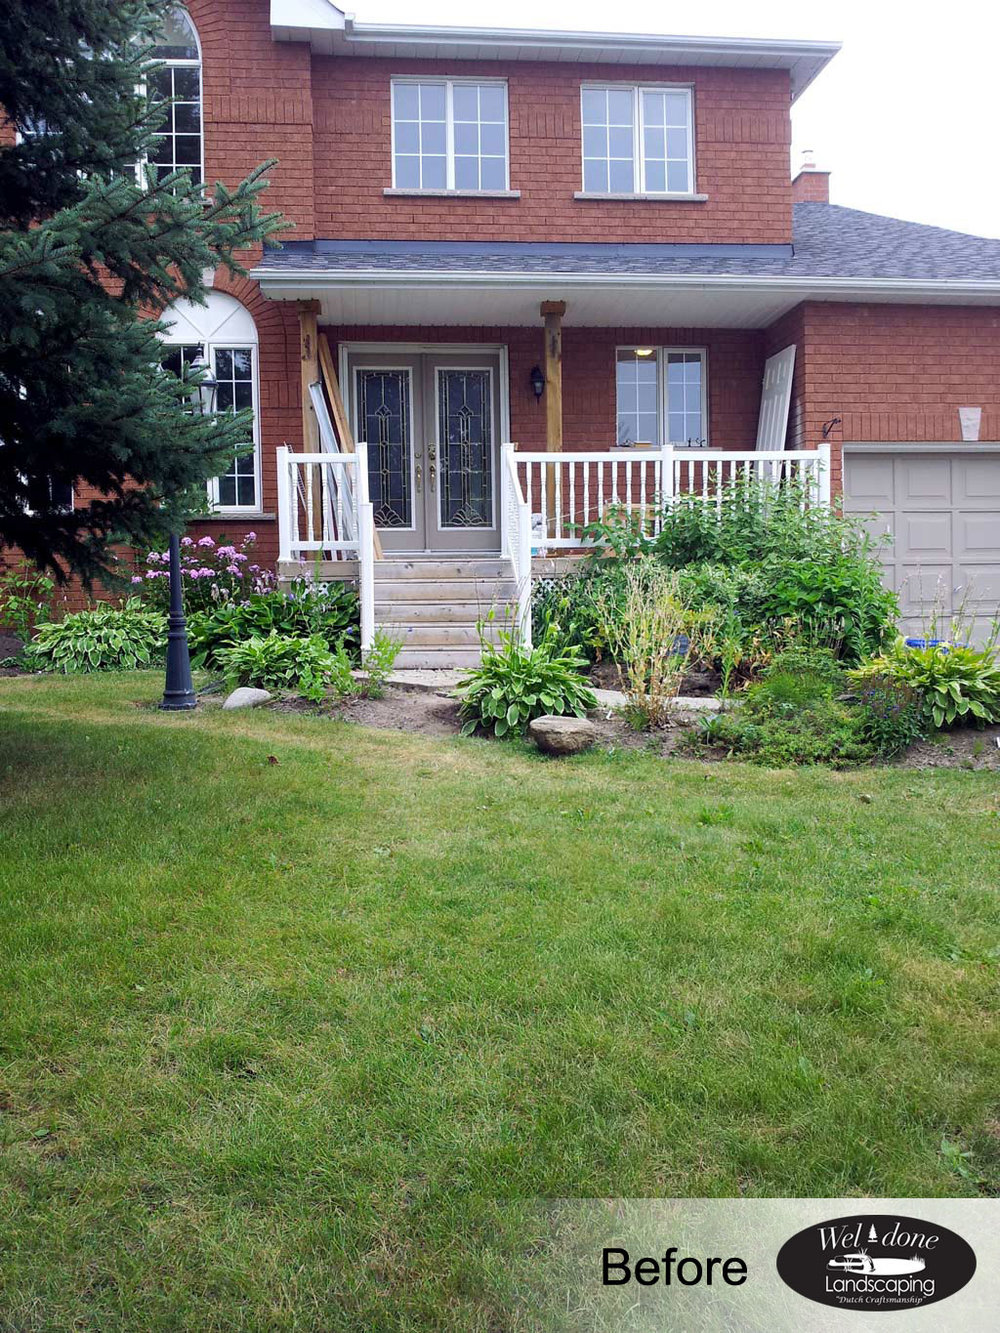 wel-done-landscaping-before-after-003.jpg